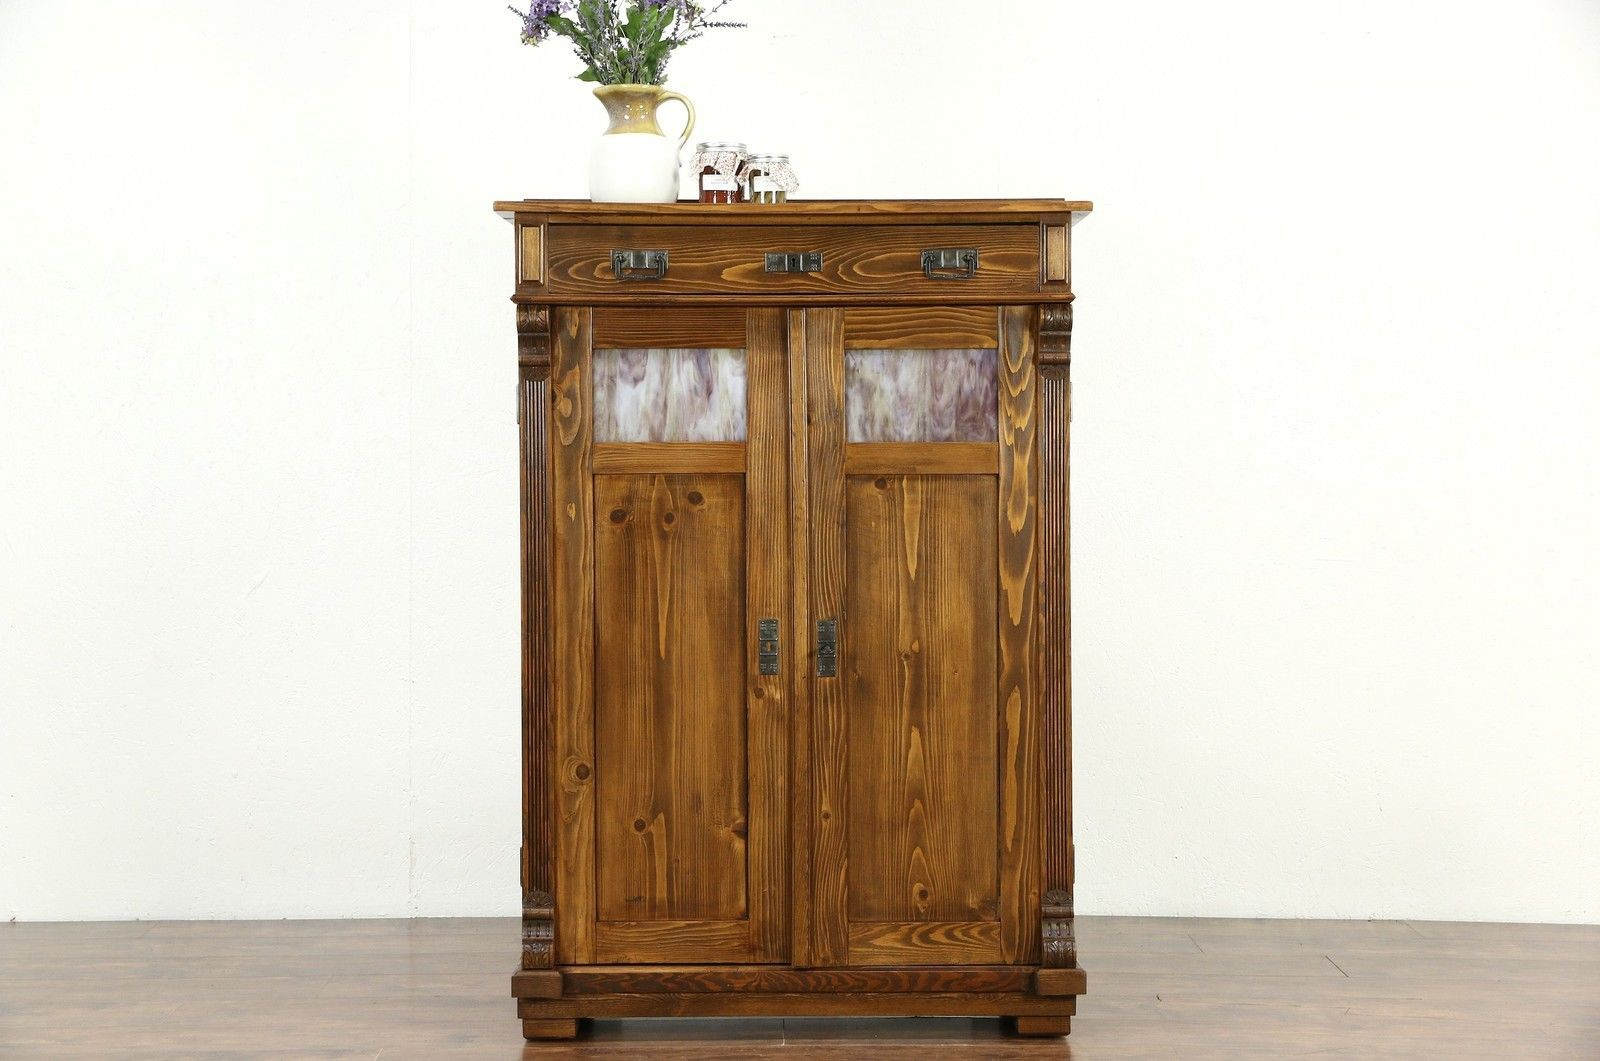 Luxury Arts and Crafts Cabinet Hardware